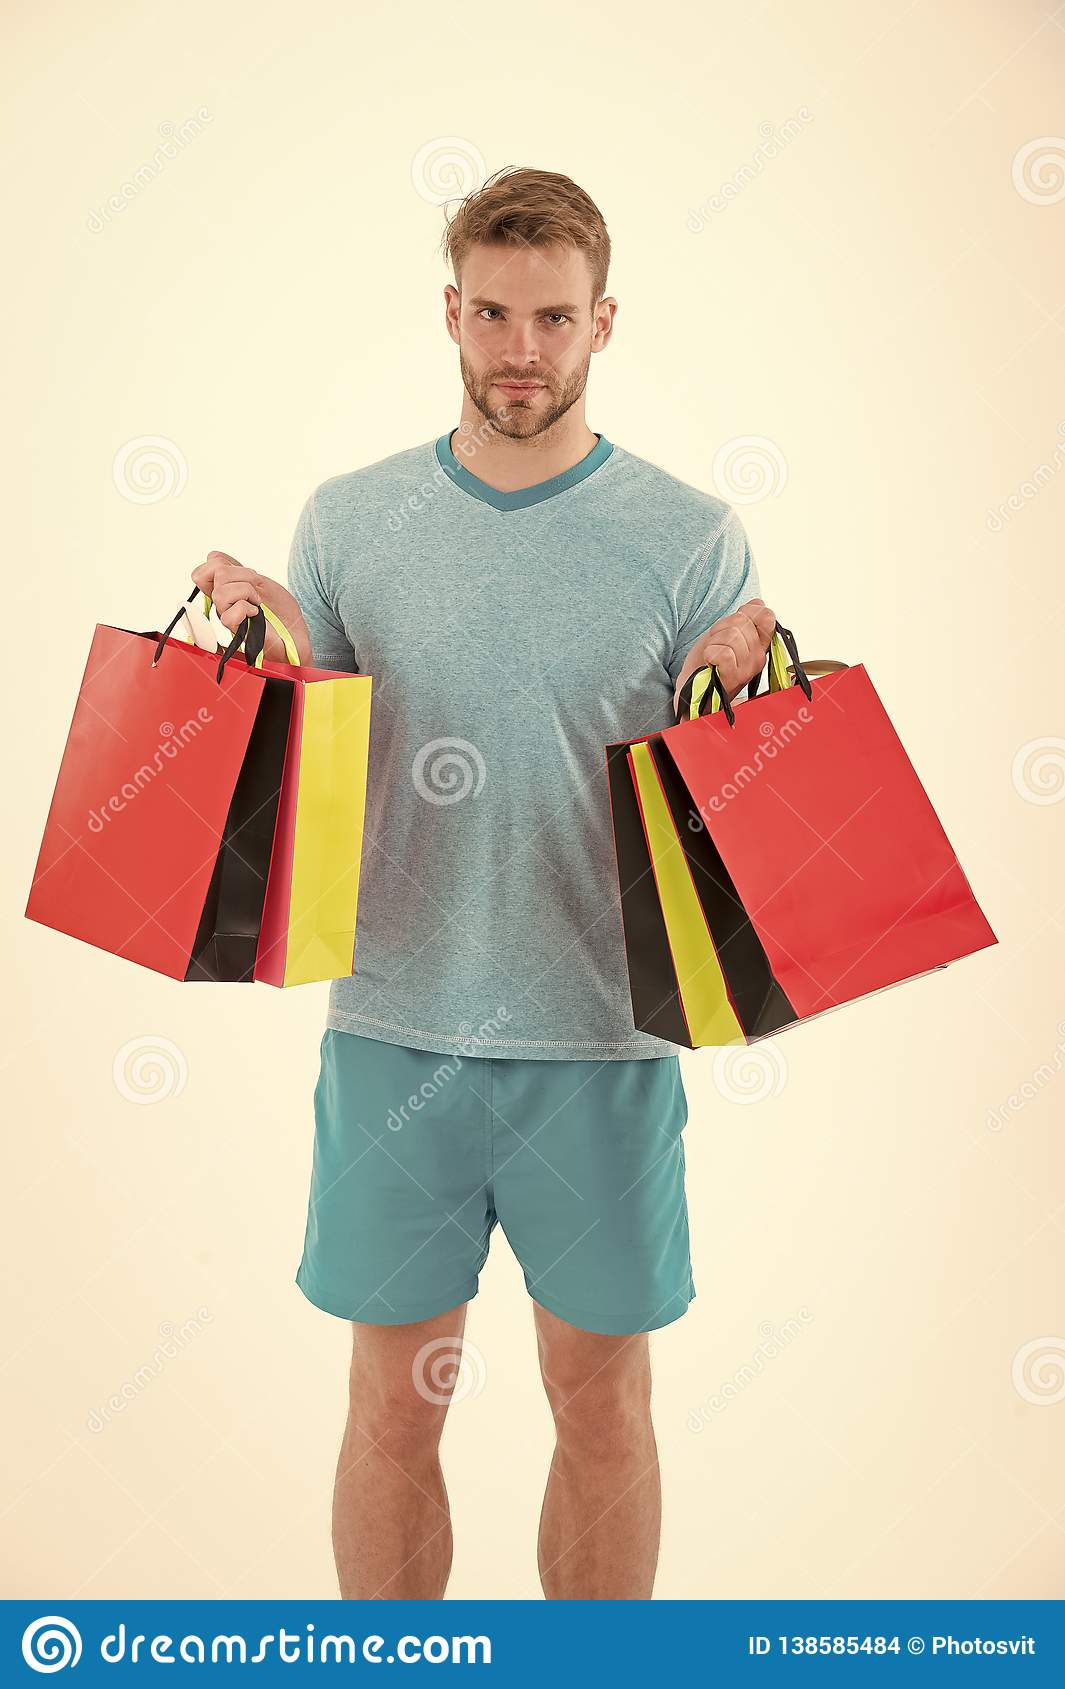 Man with shopping bags isolated on white. Macho with colorful paper bags. Fashion shopper in casual blue tshirt and